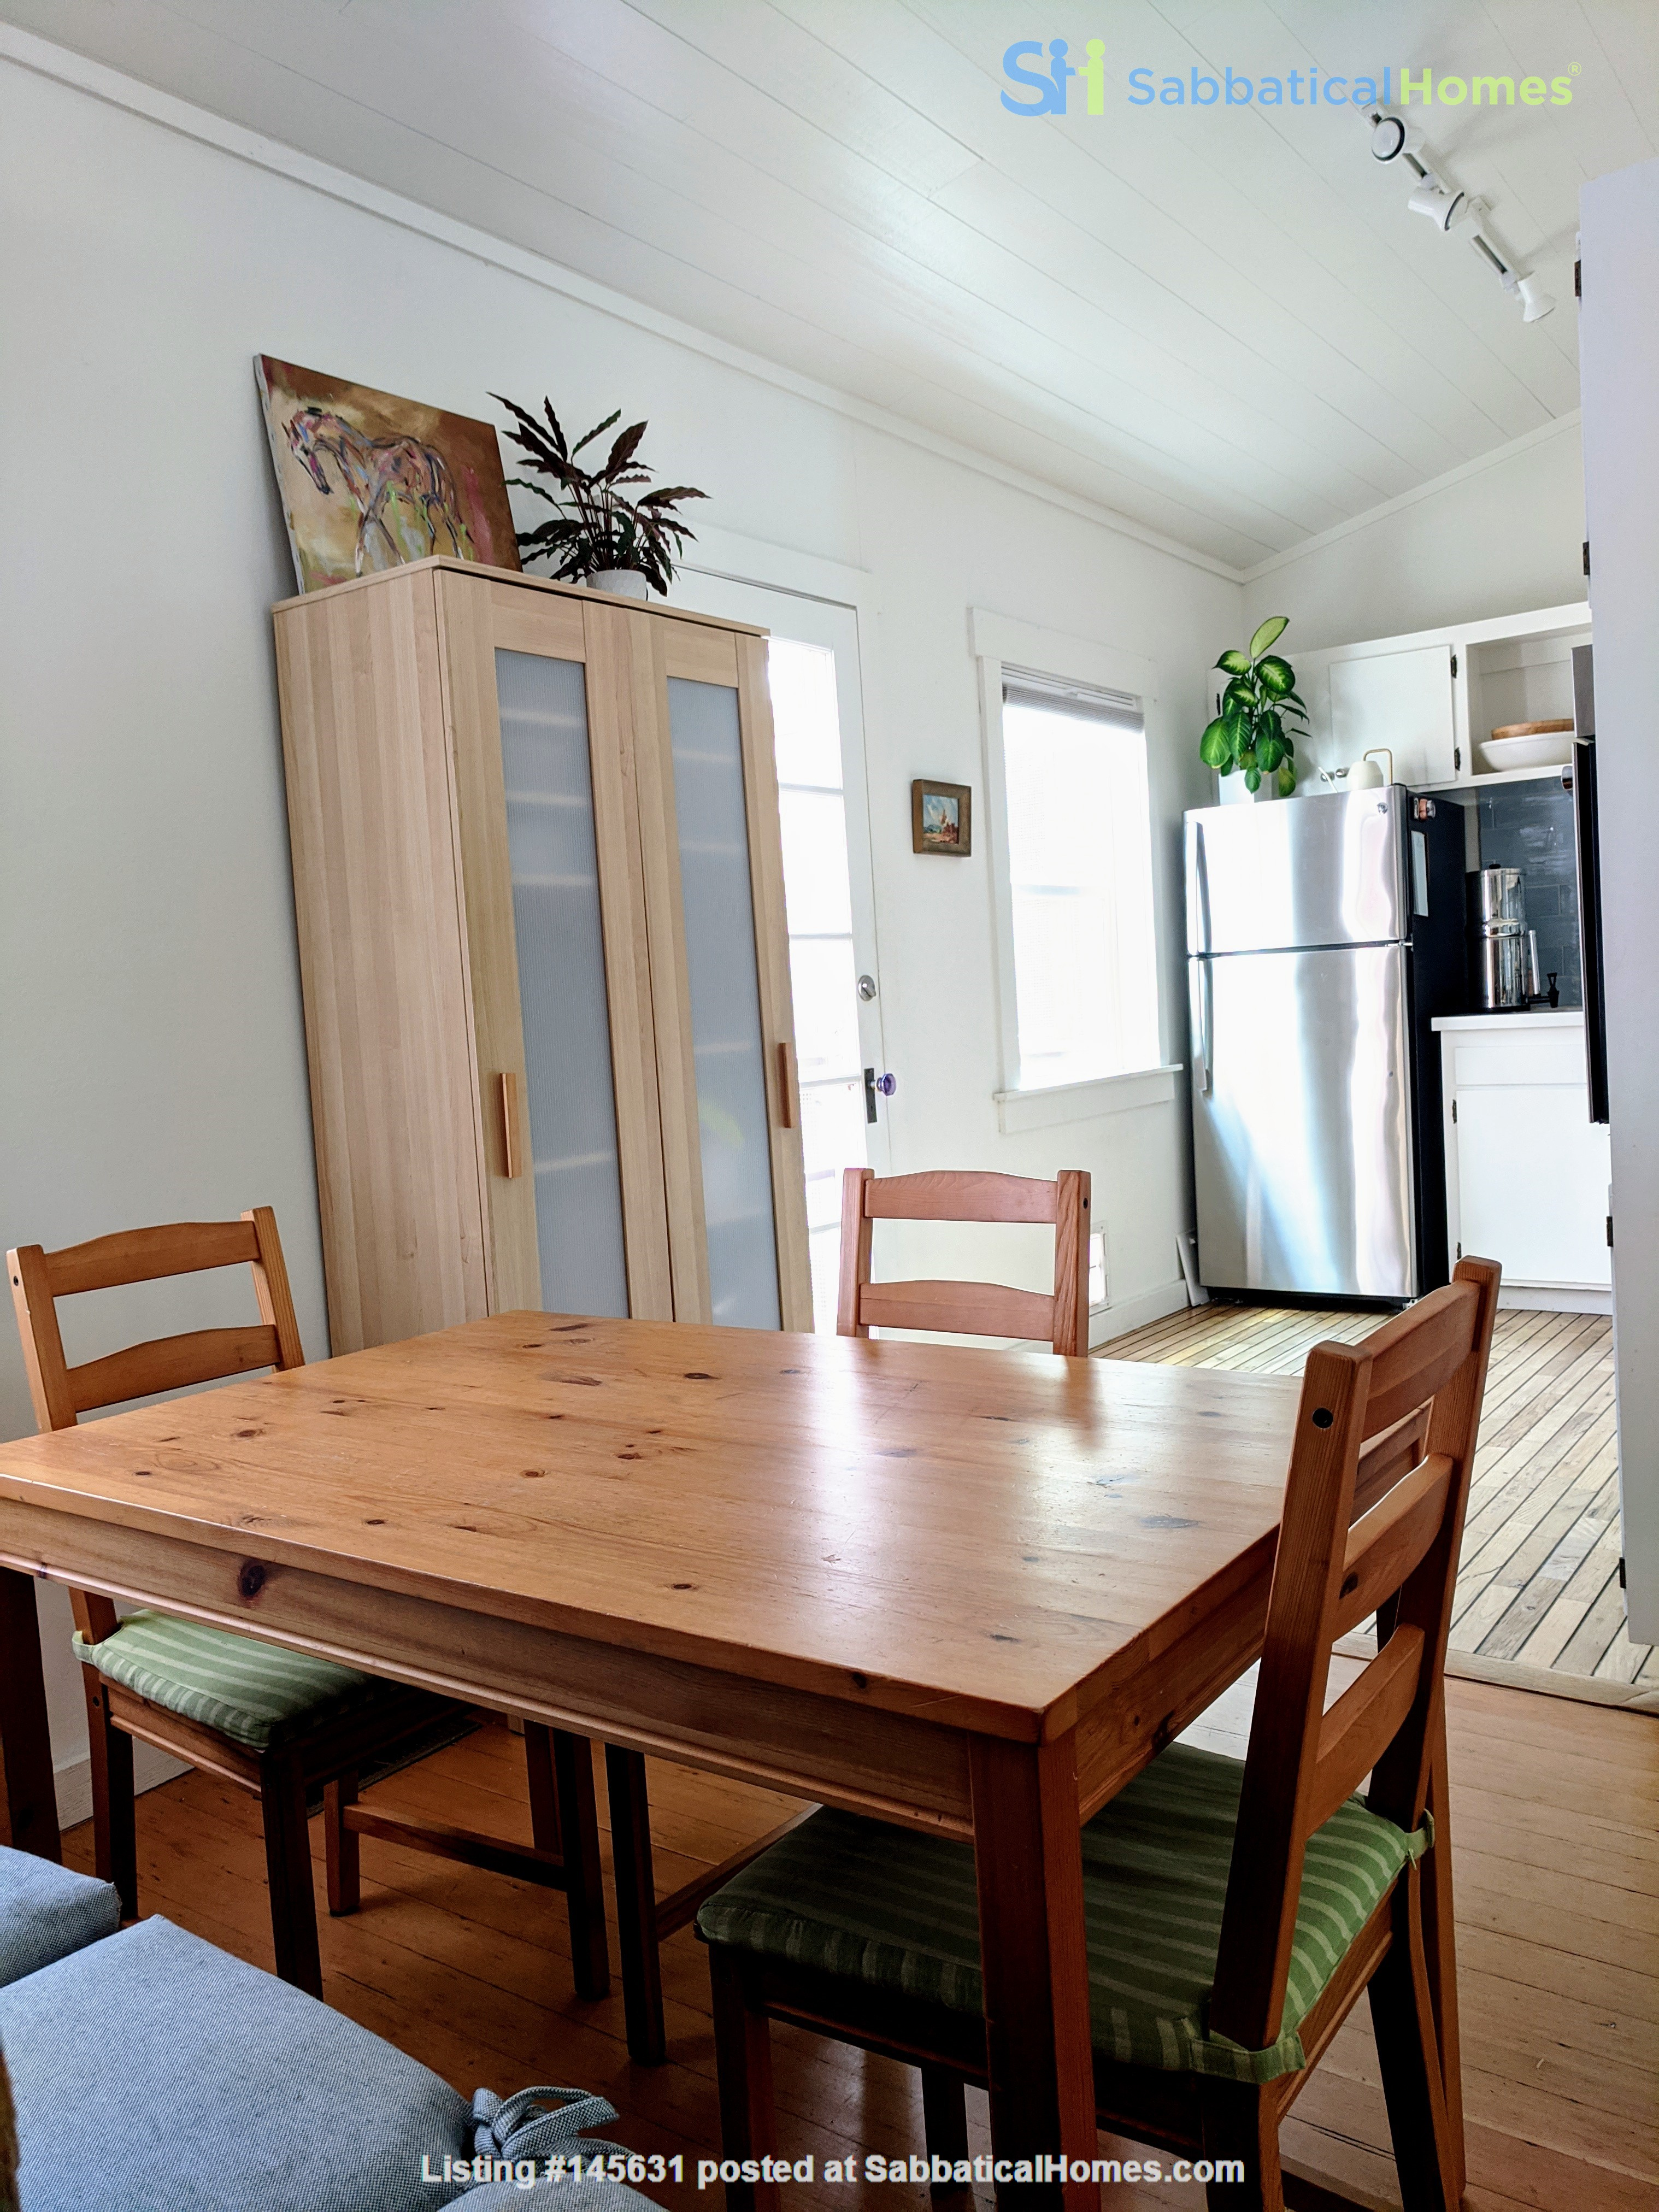 CHARMING PRIVATE COTTAGE 1 BR/1 BA + Office/studio space (720sft) Home Rental in San Rafael, California, United States 2